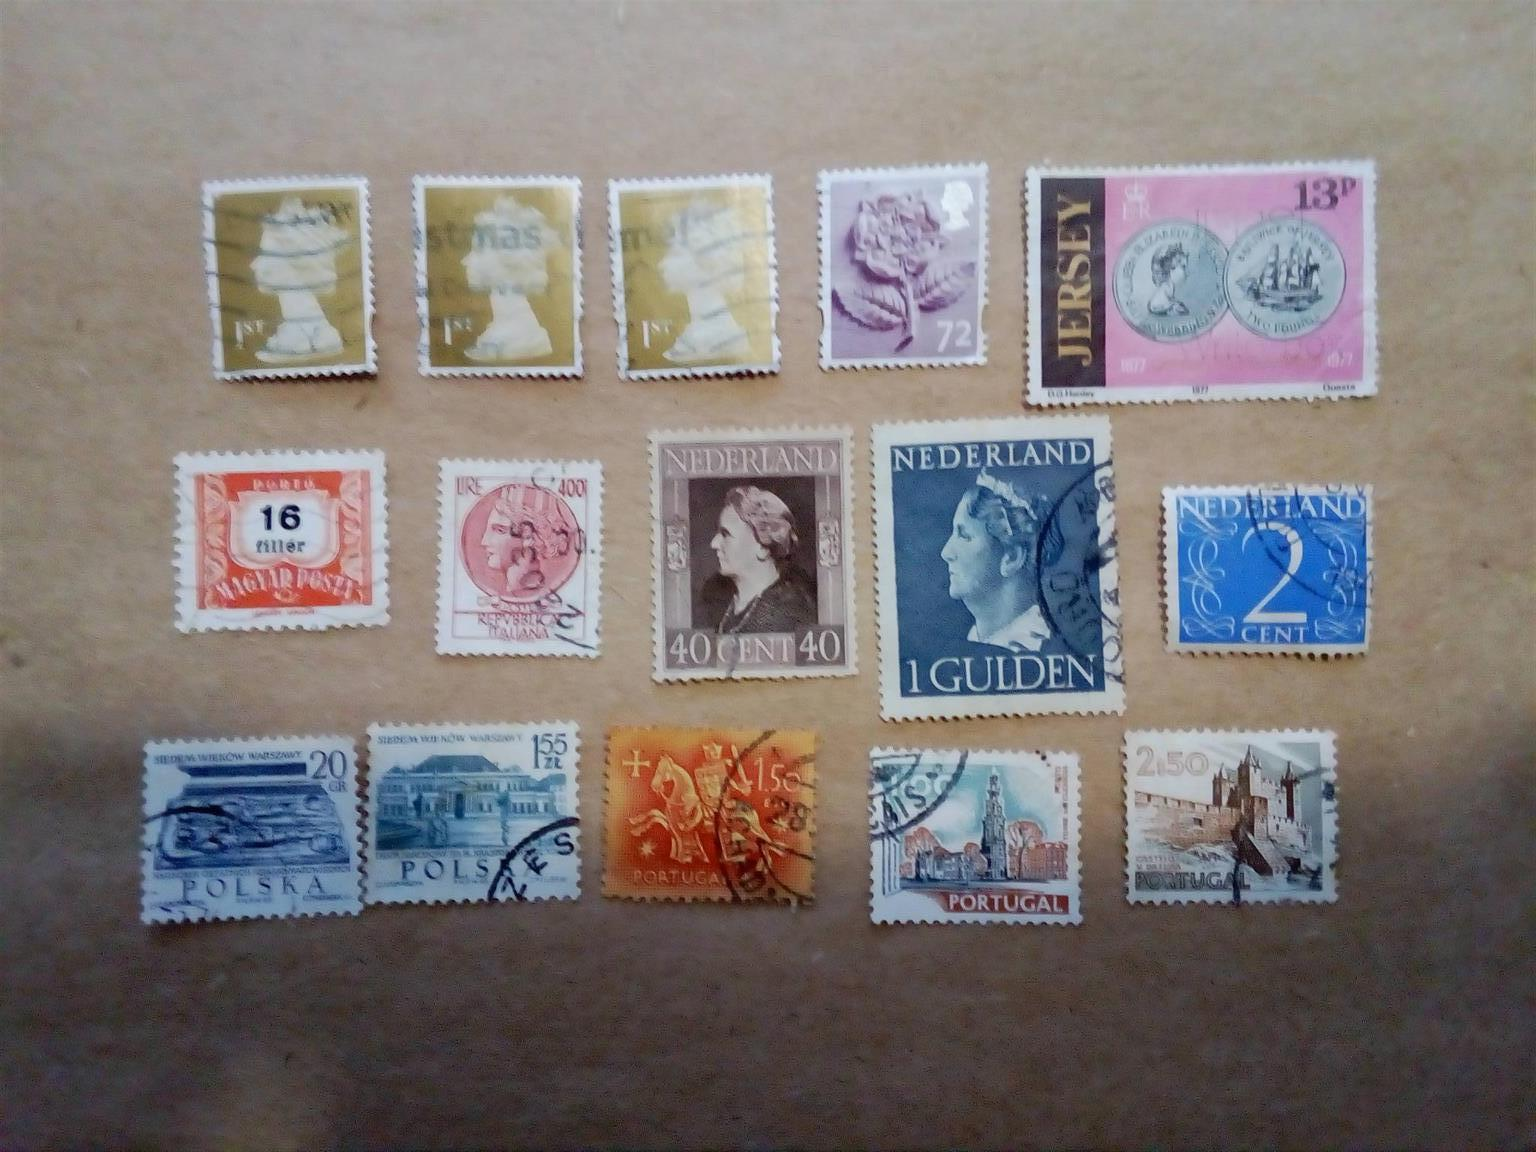 WORLD STAMP COLLECTION FOR SALE - MAKE AN OFFER